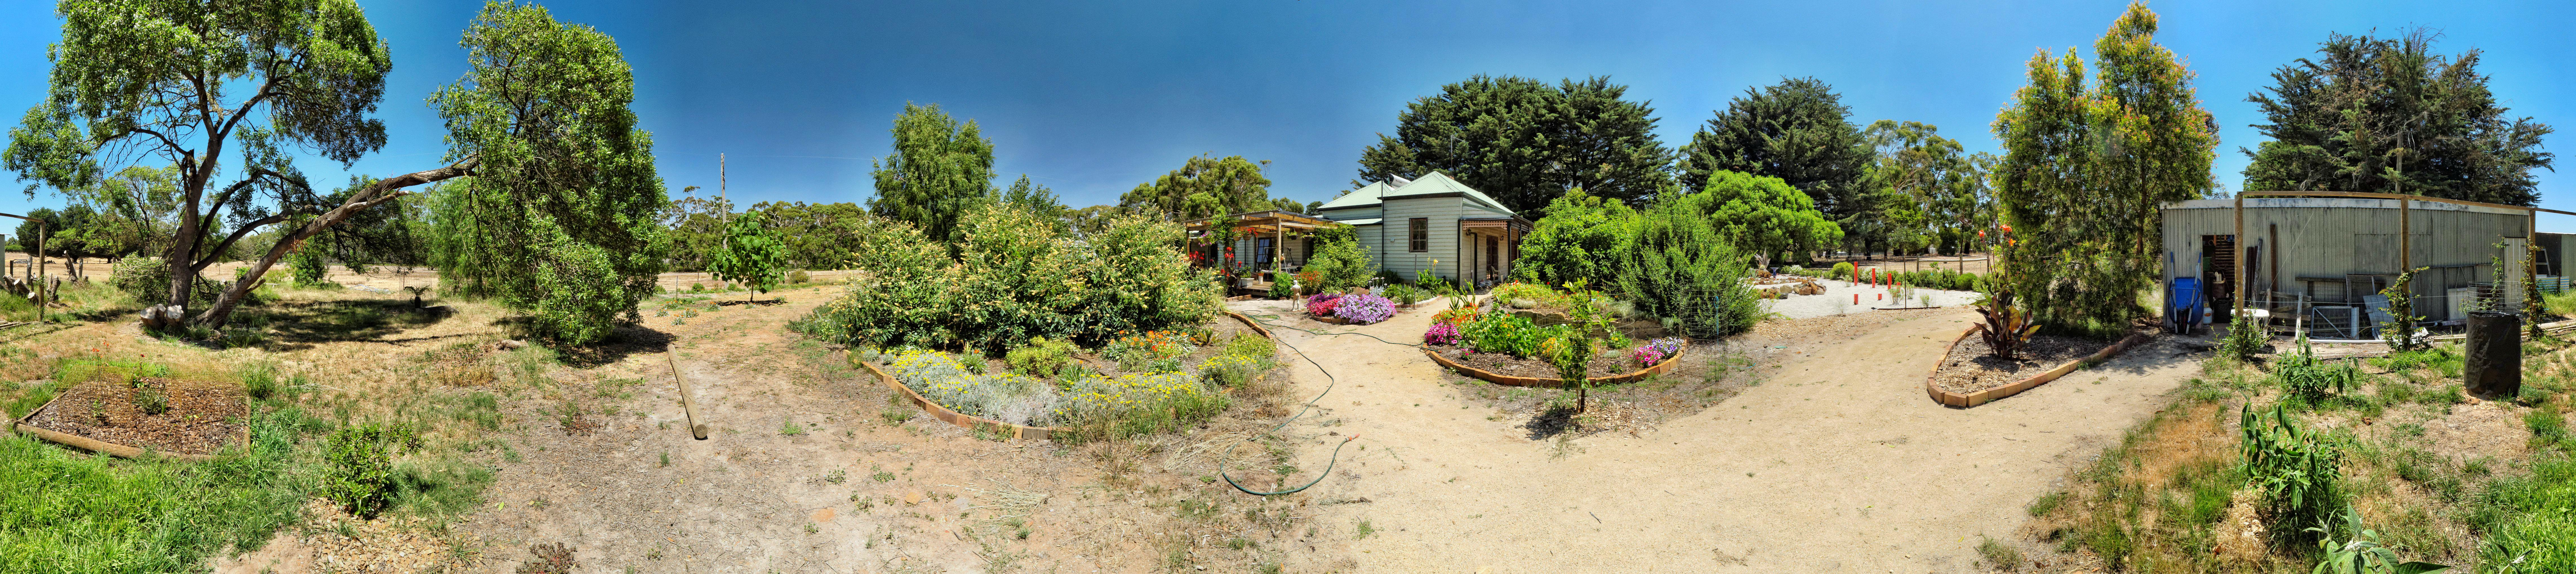 This should be garden-ne-panorama.jpeg.  Is it missing?